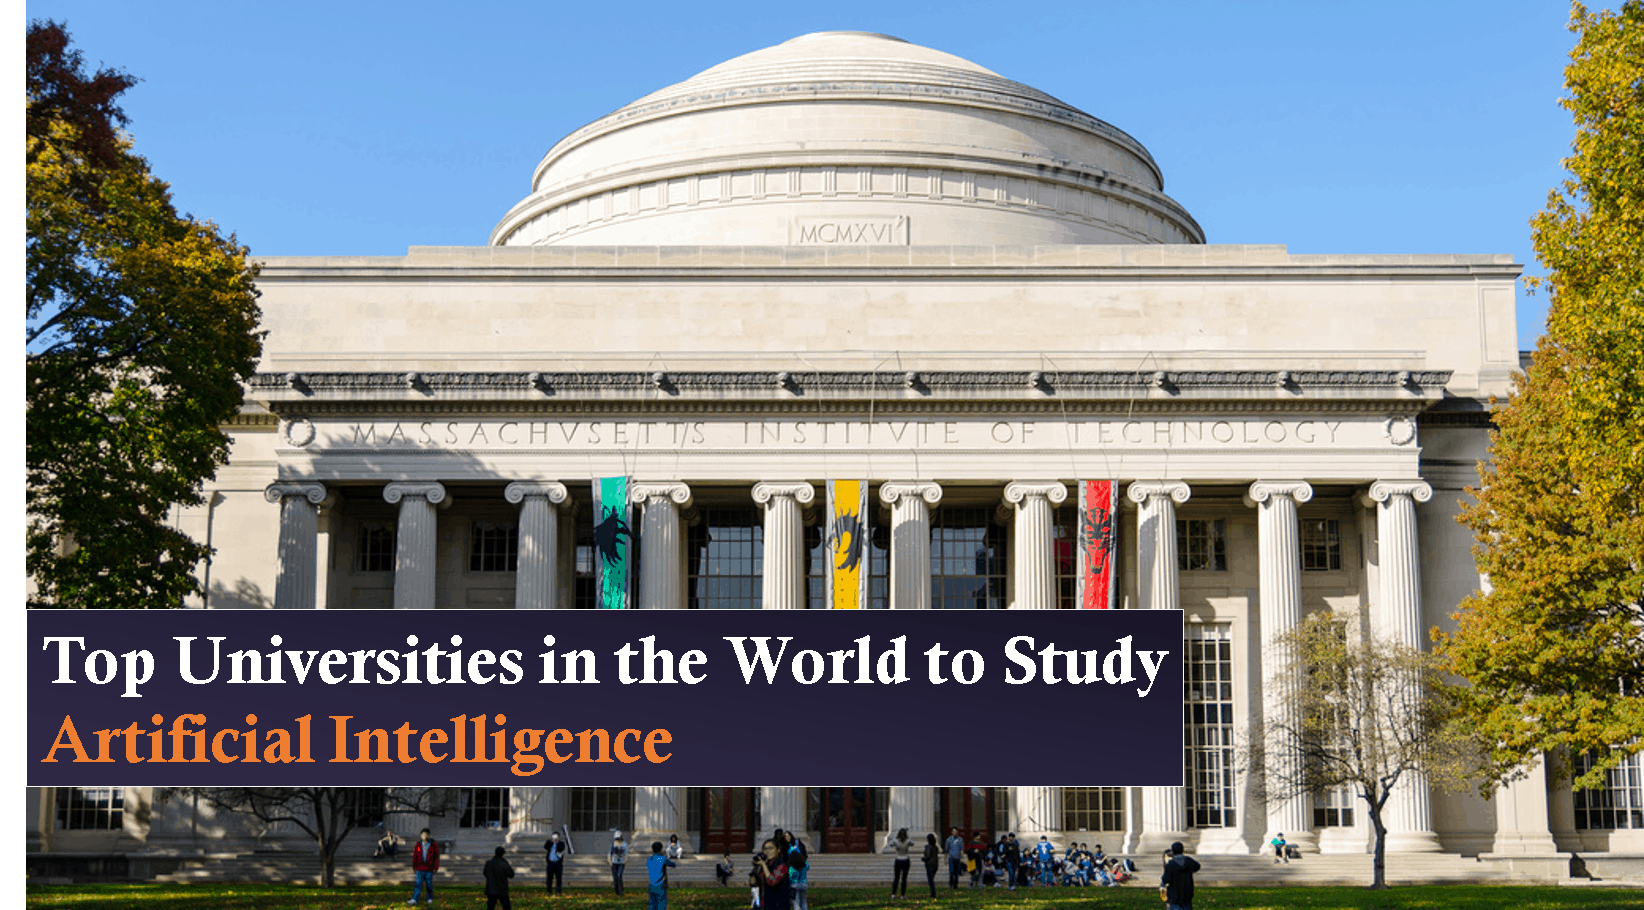 If You Are Aspiring To Study And Conduct Research In Artificial  Intelligence (AI), I Have Made A Precise List Of Some World Class  Universities That Offer ...